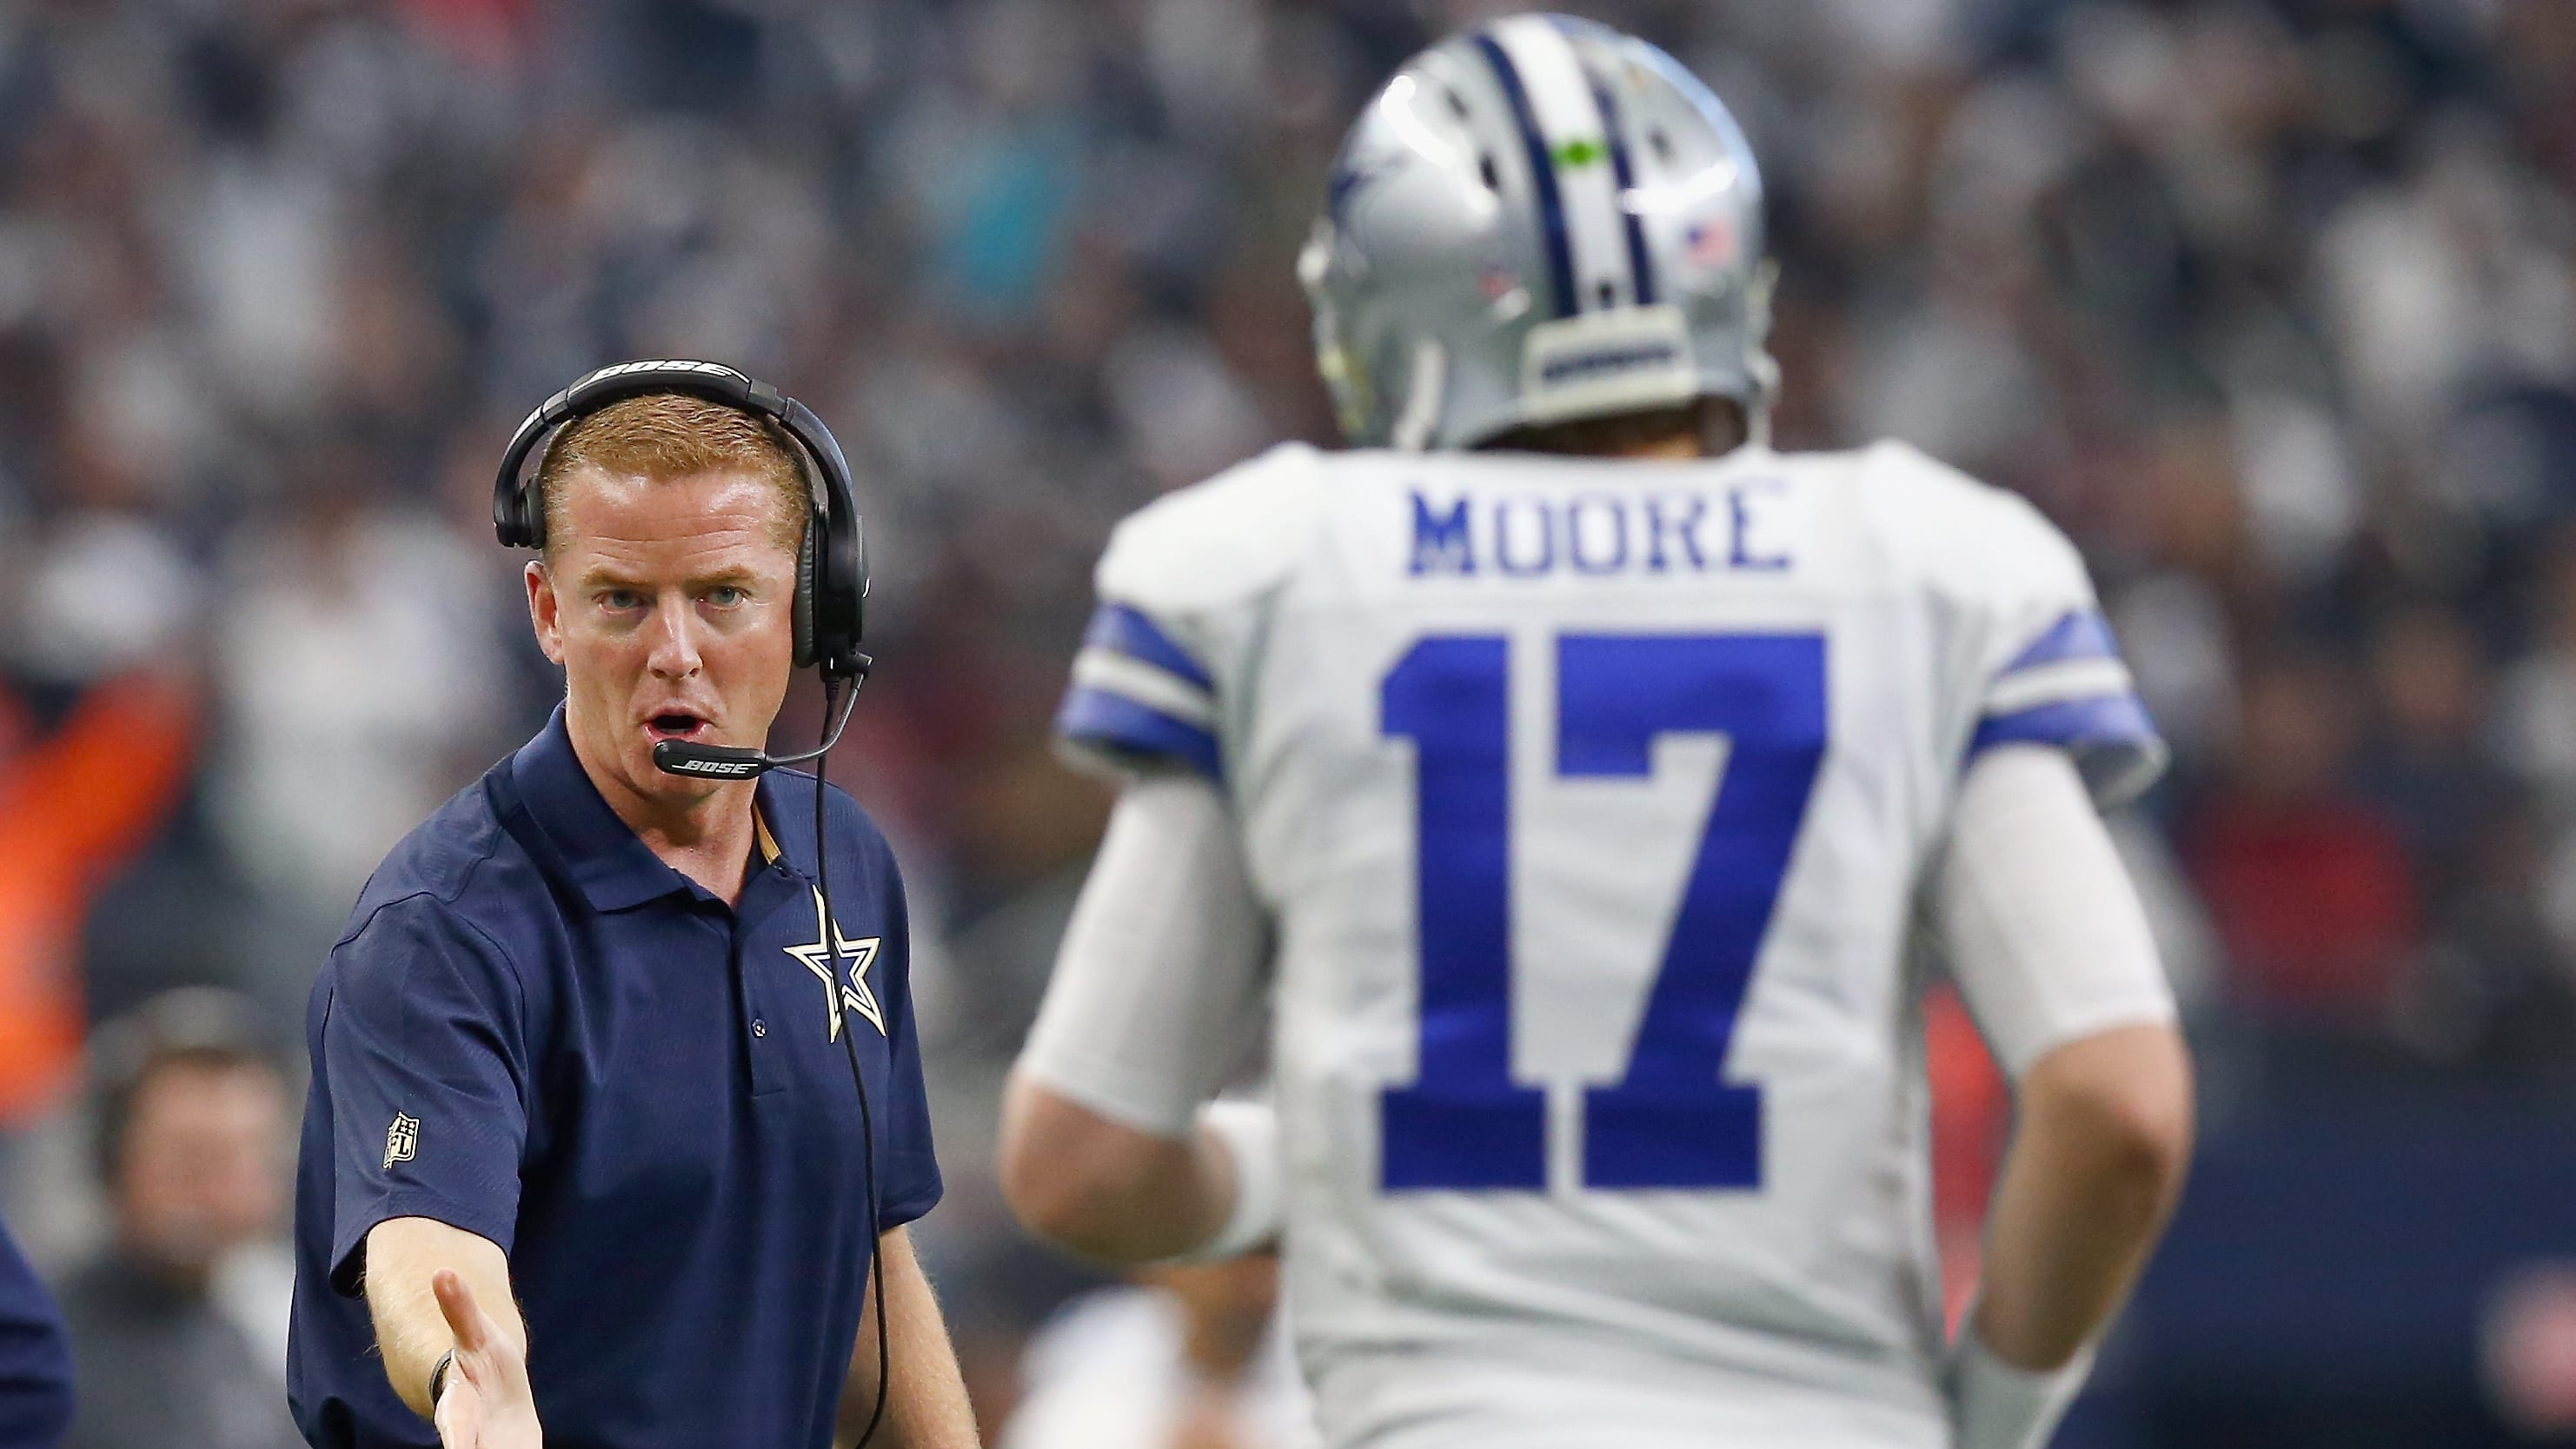 ARLINGTON, TX - JANUARY 03:  Head coach Jason Garrett of the Dallas Cowboys celebrates with Kellen Moore #17 of the Dallas Cowboys after the Cowboys scored against the Washington Redskins in the second quarter at AT&T Stadium on January 3, 2016 in Arlington, Texas.  (Photo by Tom Pennington/Getty Images)